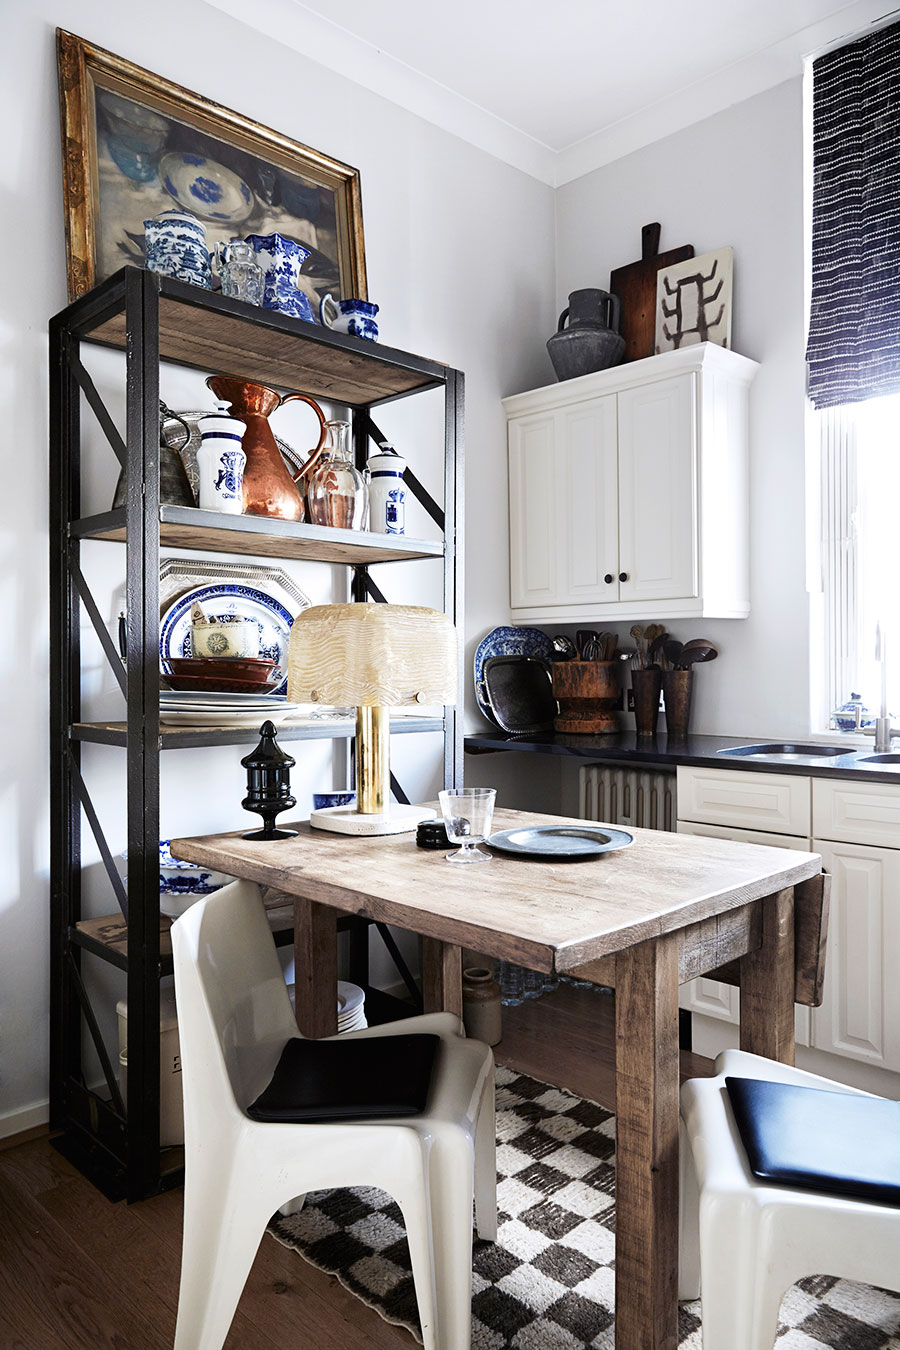 malene-birger-london-kok_matplats_kitchen